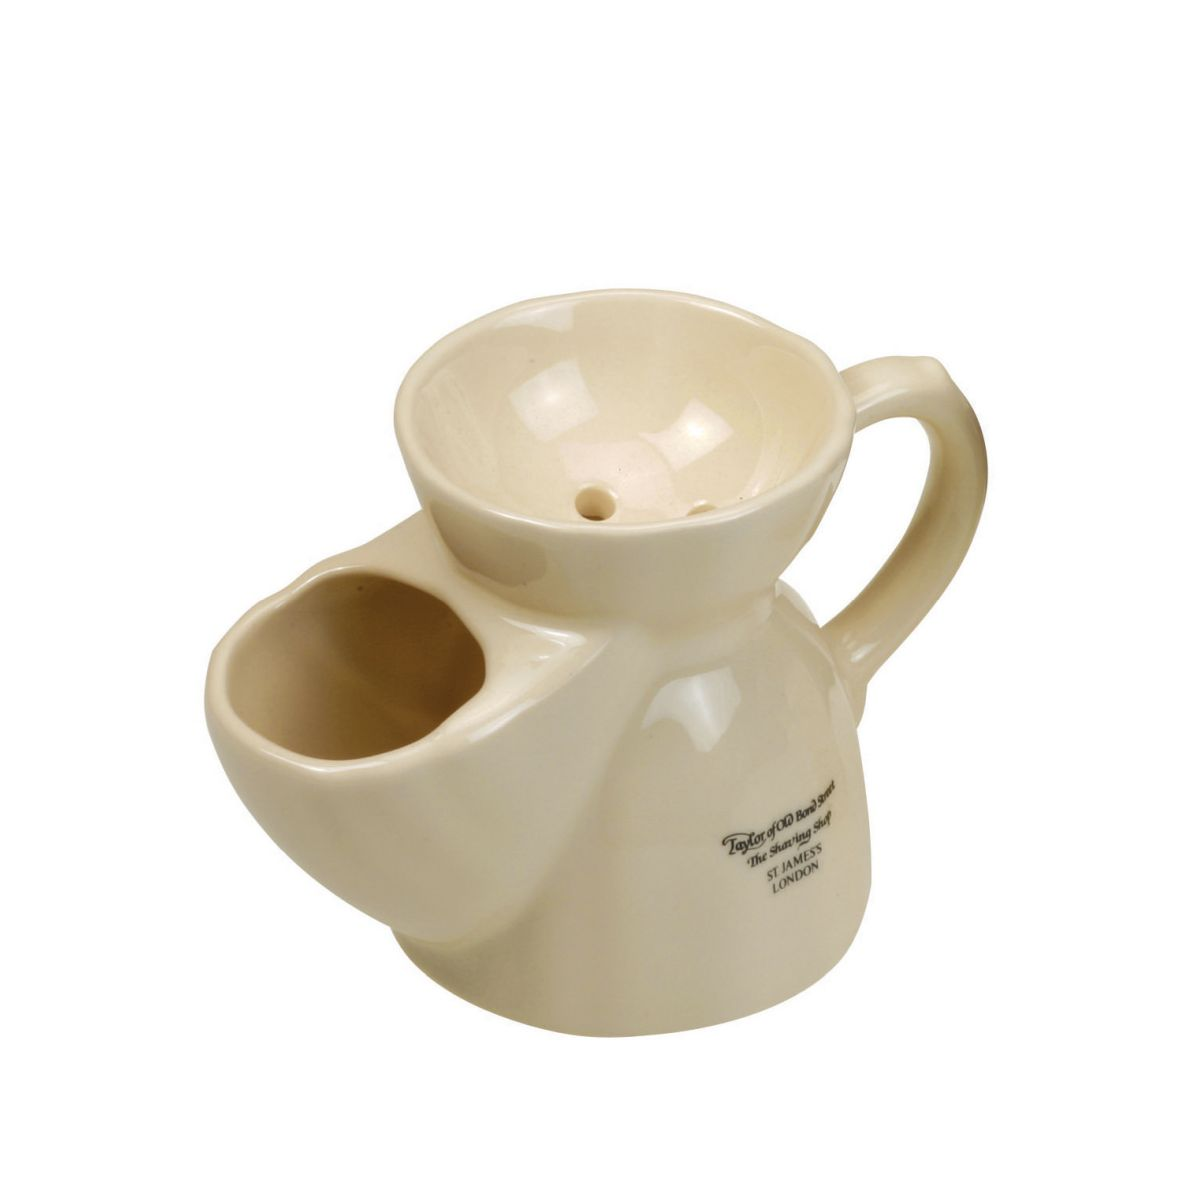 01070 1 1 - Taylor Of Old Bond Street Traditional Ivory Ceramic Shaving Mug - 01070